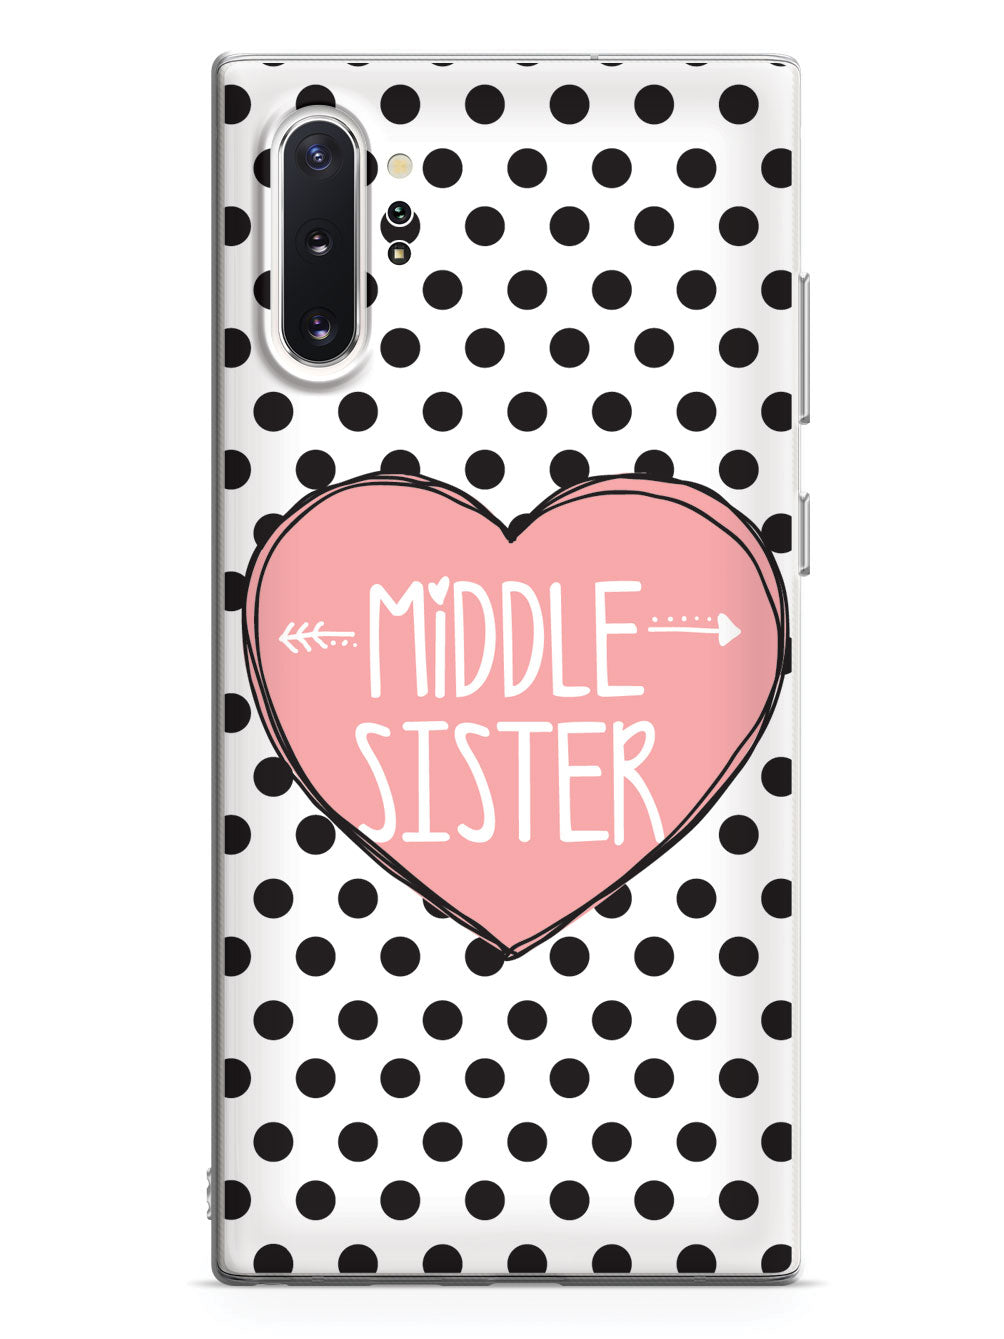 Sisterly Love - Middle Sister - Polka Dots Case